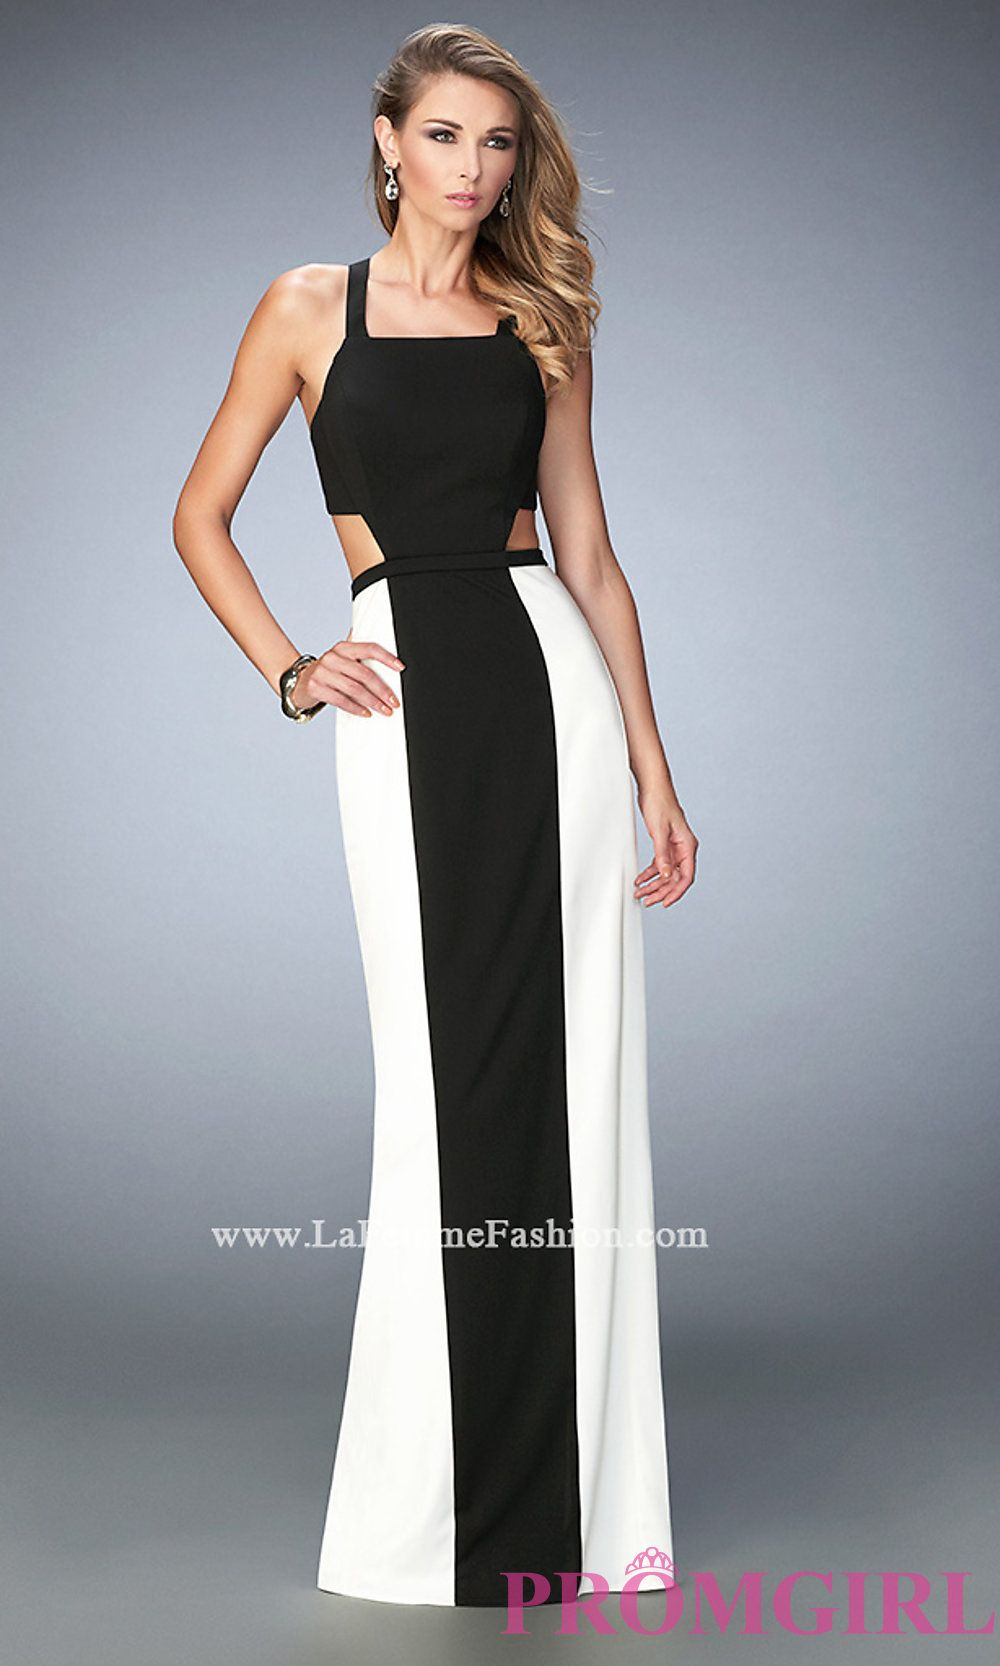 Black and Ivory Prom Dress by La Femme Style: LF-22310 | Prom 2016 ...